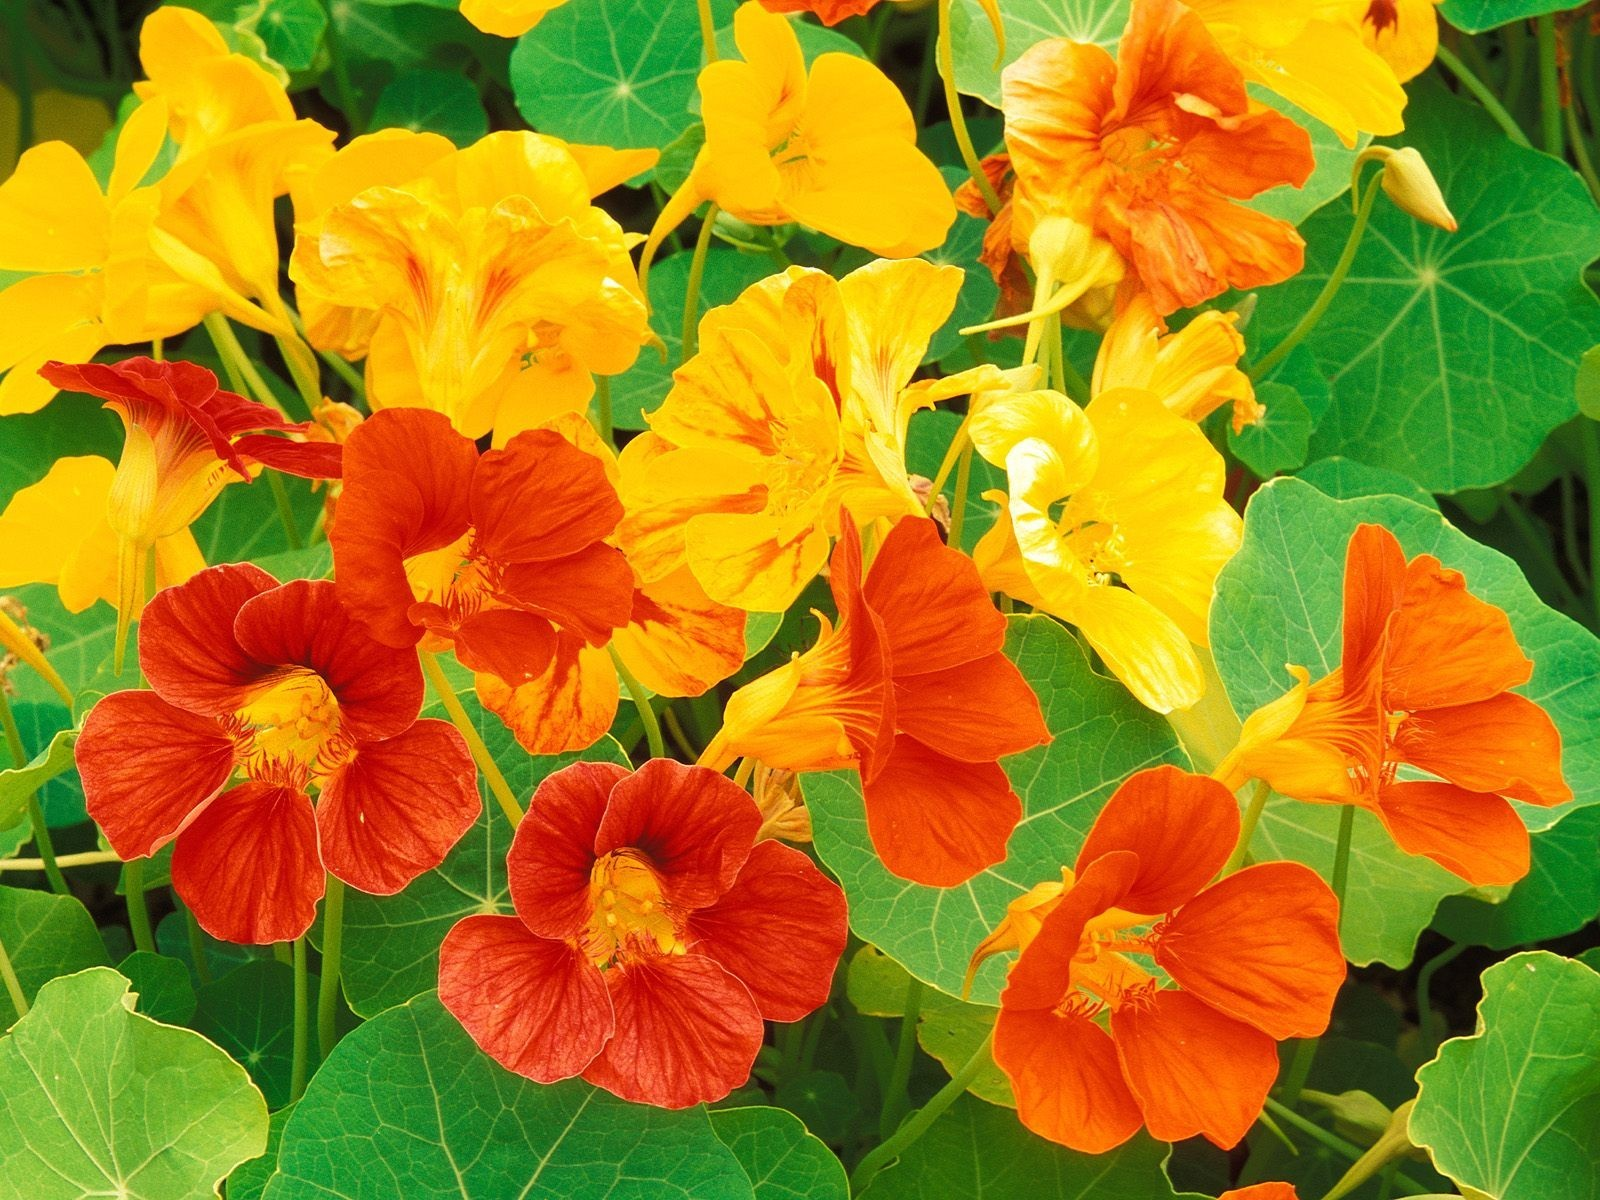 Nasturtium Edible Flowers to Flavour your Food & Improve your Health (gardeningflavours.com)